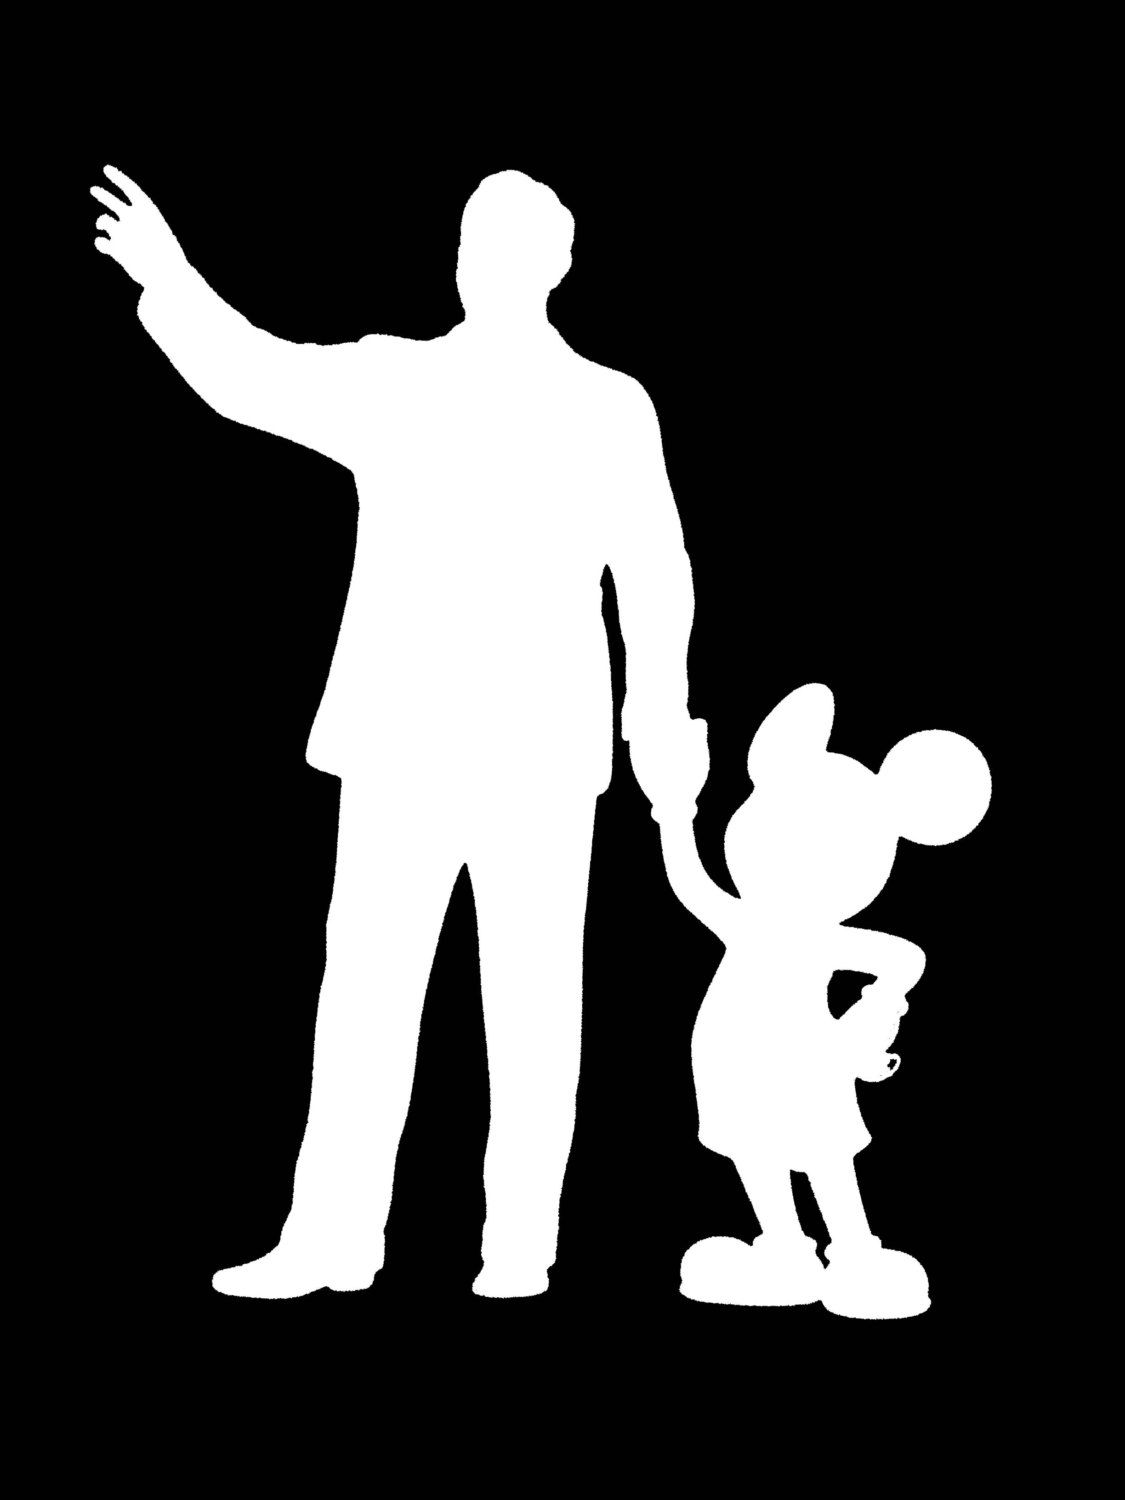 WALT DISNEY AND MICKEY MOUSE Walking Together at DISNEYLAND Vinyl Decal